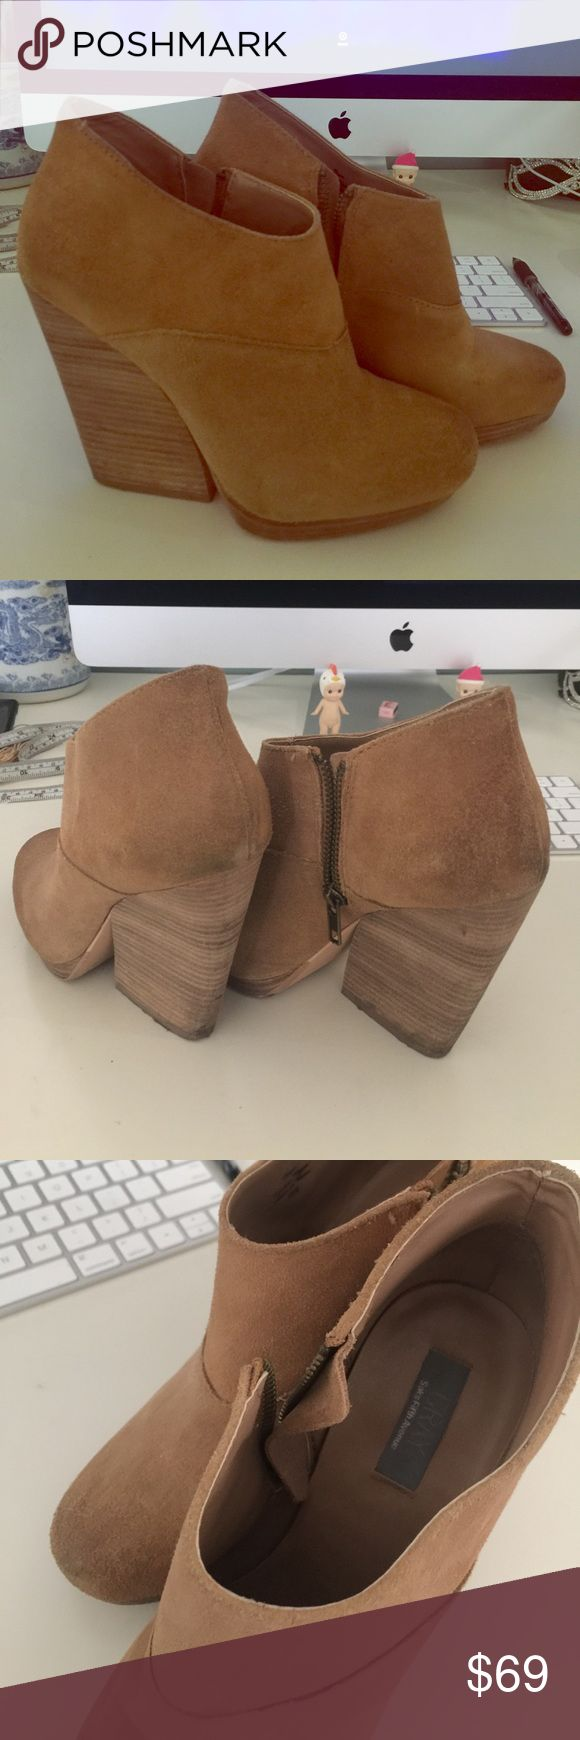 SALE Olana heeled boots by grey said fifth avenue Worn few times still in very new condition nice leather boots gives nice height and looks good on ! Goes well especially gorgeous with nice pair of fitted jeans  fall must have Saks Fifth Avenue Shoes Ankle Boots & Booties